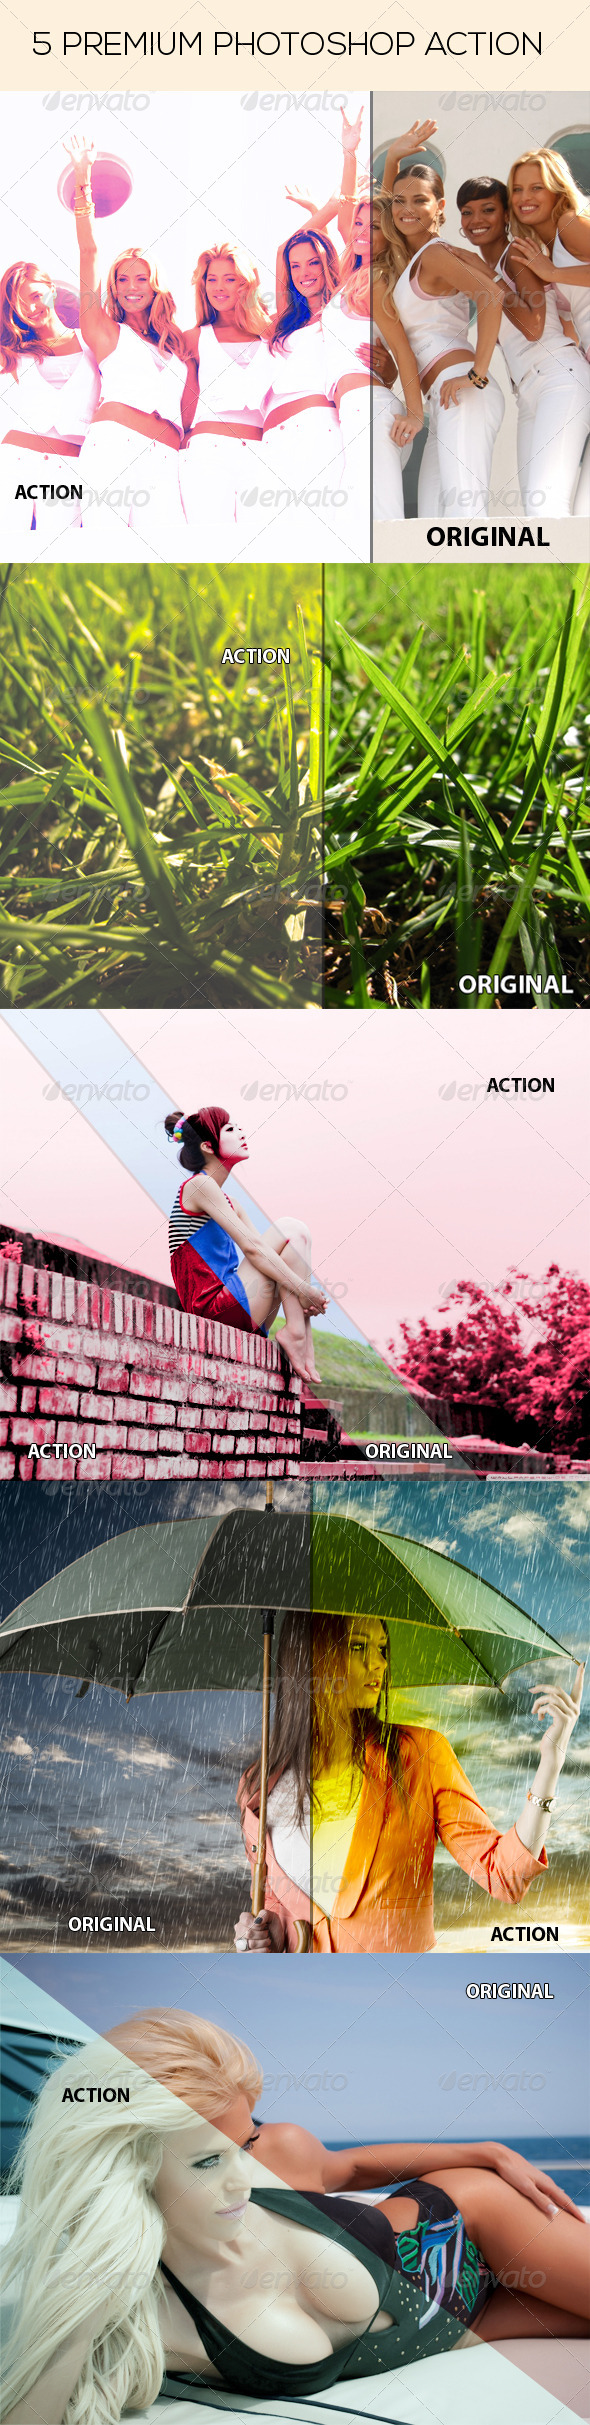 GraphicRiver 5 Premium Photoshop Action 8056412